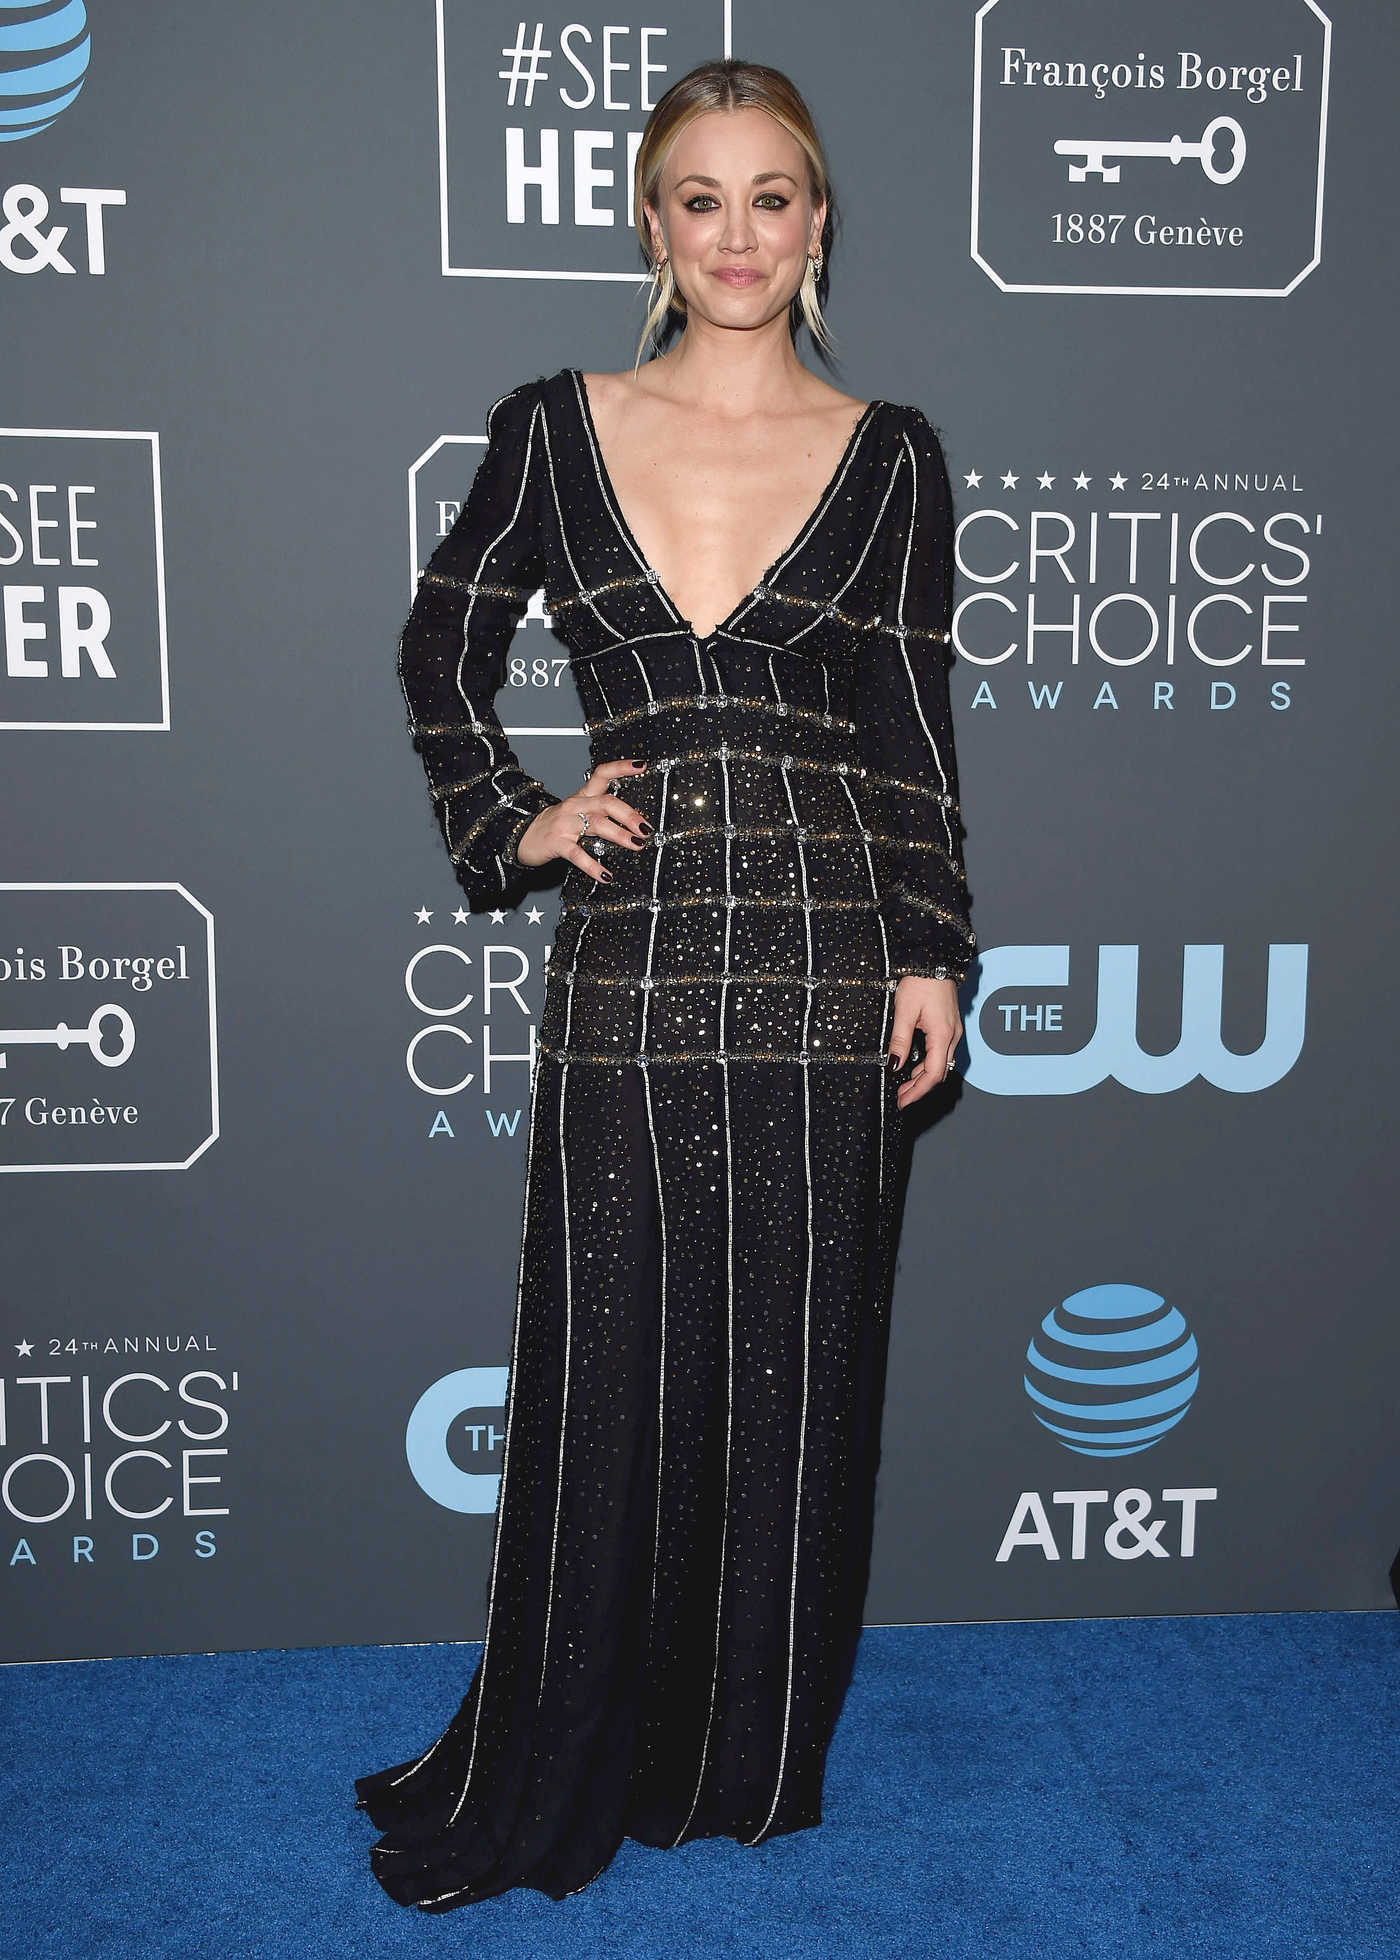 Kaley Cuoco Attends the 24th Annual Critics' Choice Awards at Barker Hangar in Santa Monica 01/13/2019